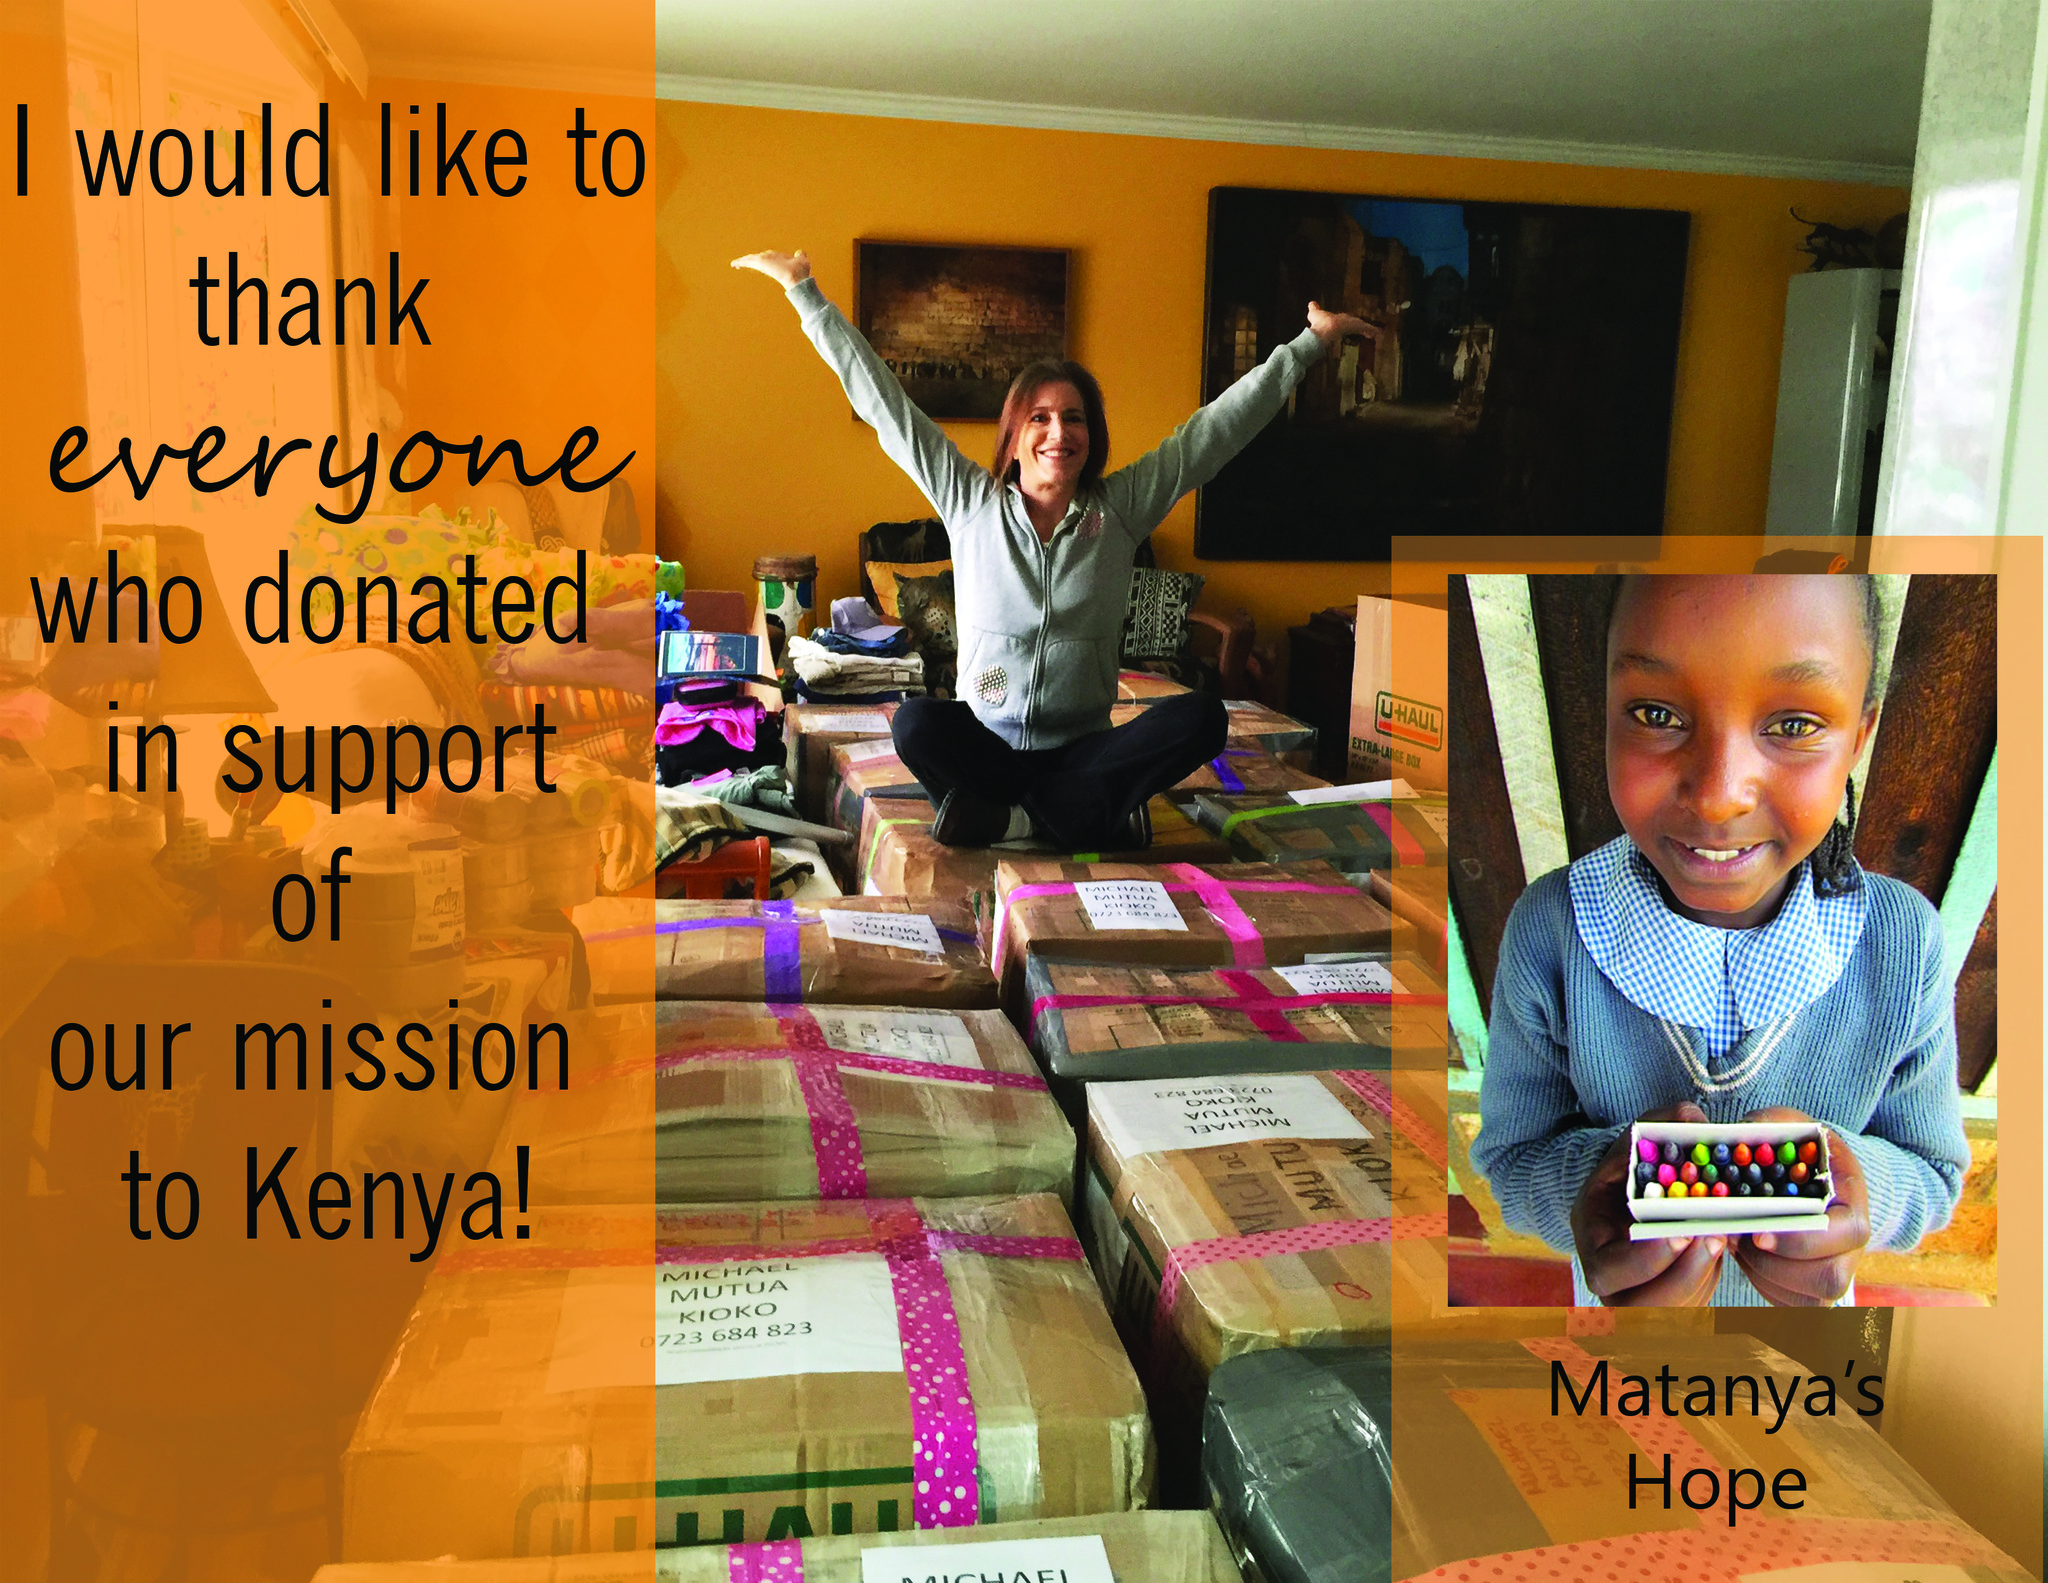 Thank you EVERYONE who donated in support of our Mission